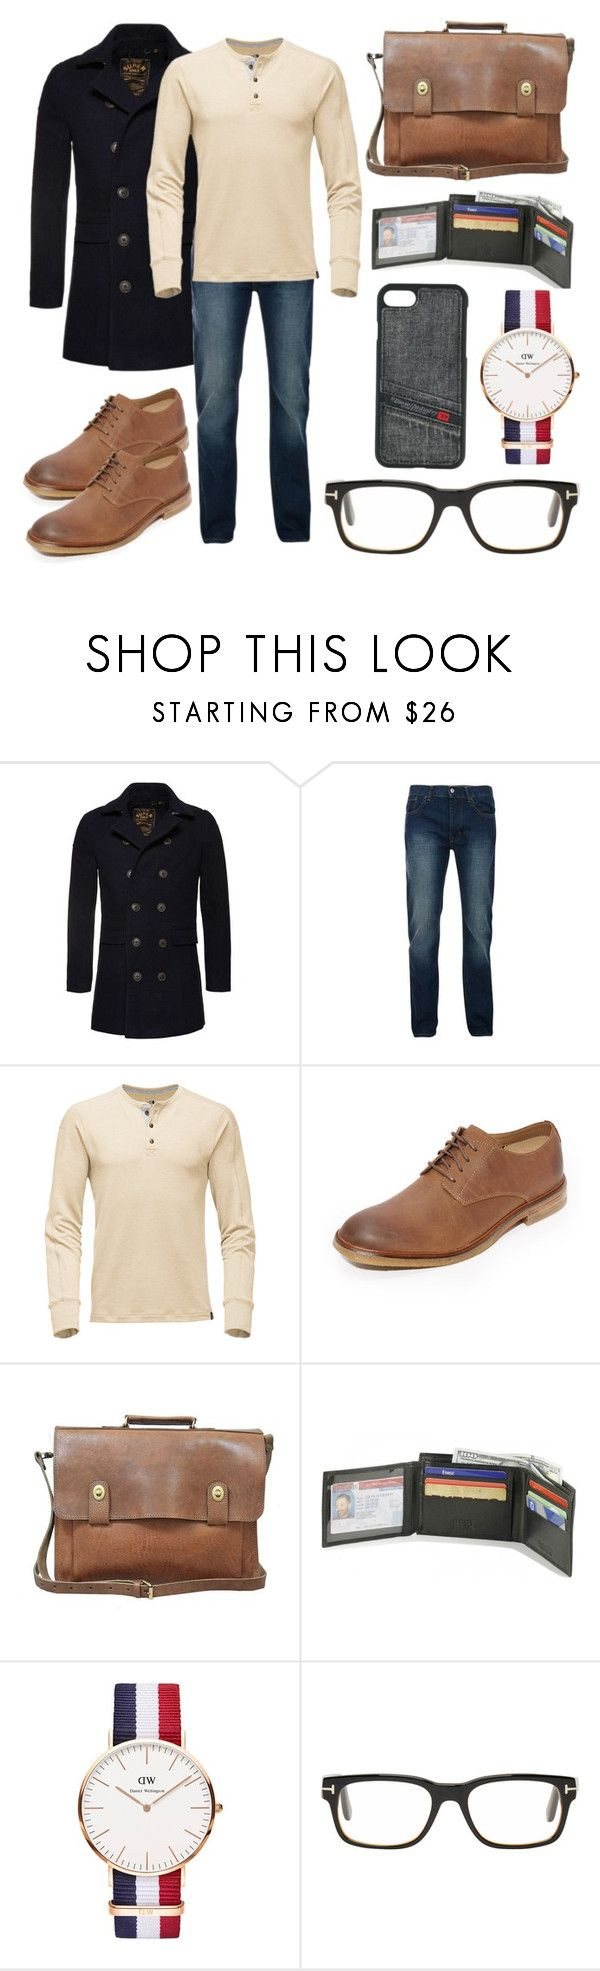 """Men's Fall Fashion"" by kellsmarie18 ❤ liked on Polyvore featuring Superdry, Bellfield, Clarks, Daniel Wellington, Tom Ford, Diesel, men's fashion and menswear"